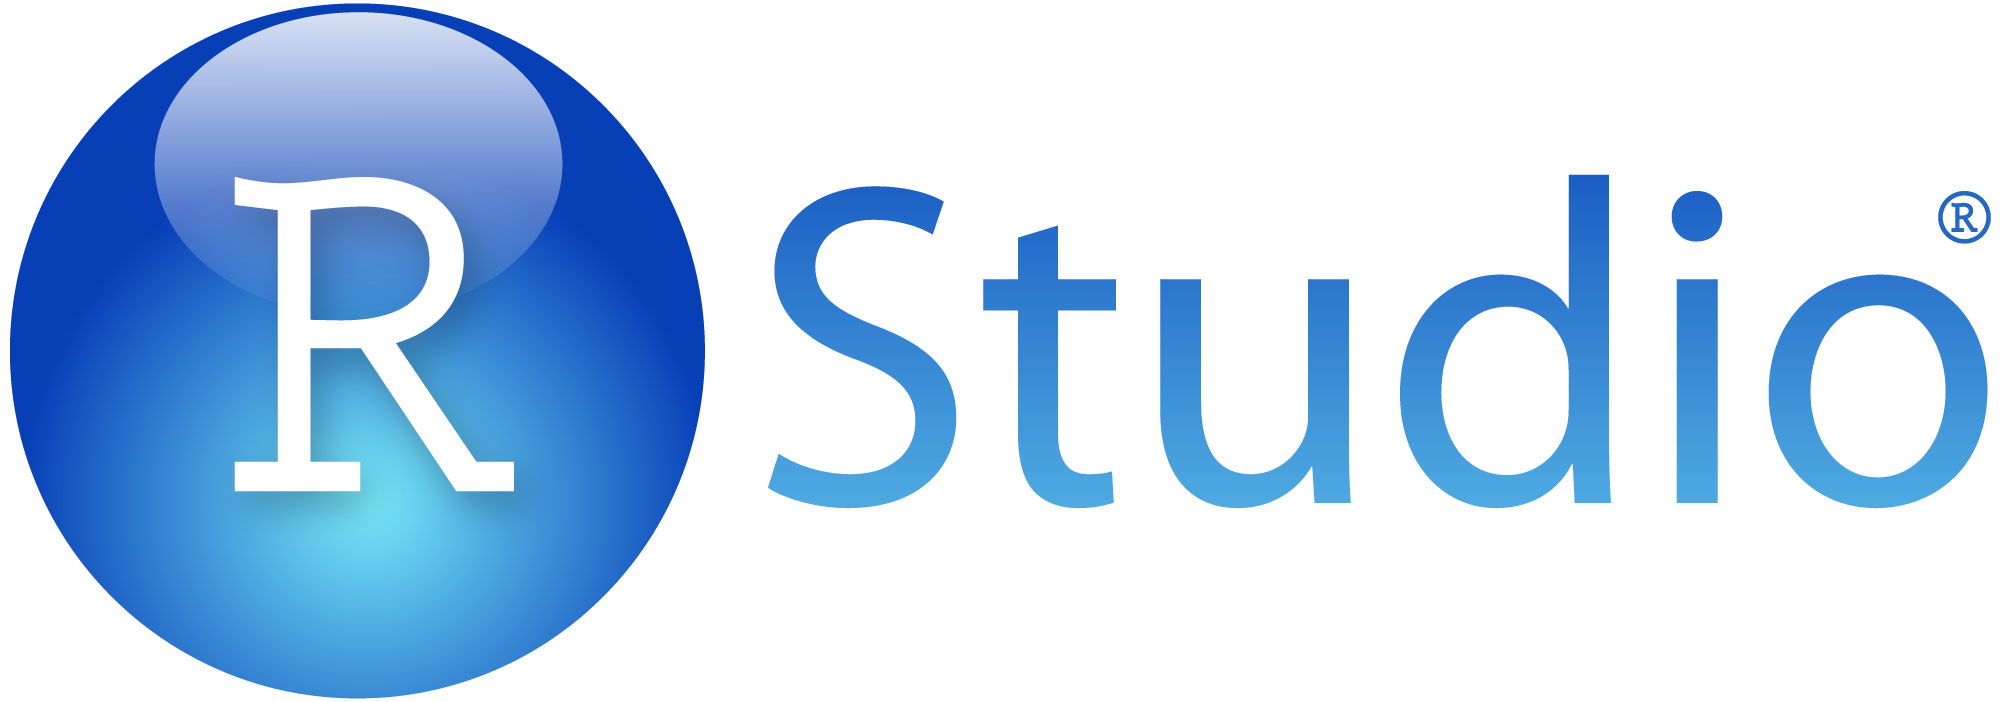 Sciente Consulting partners with RStudio